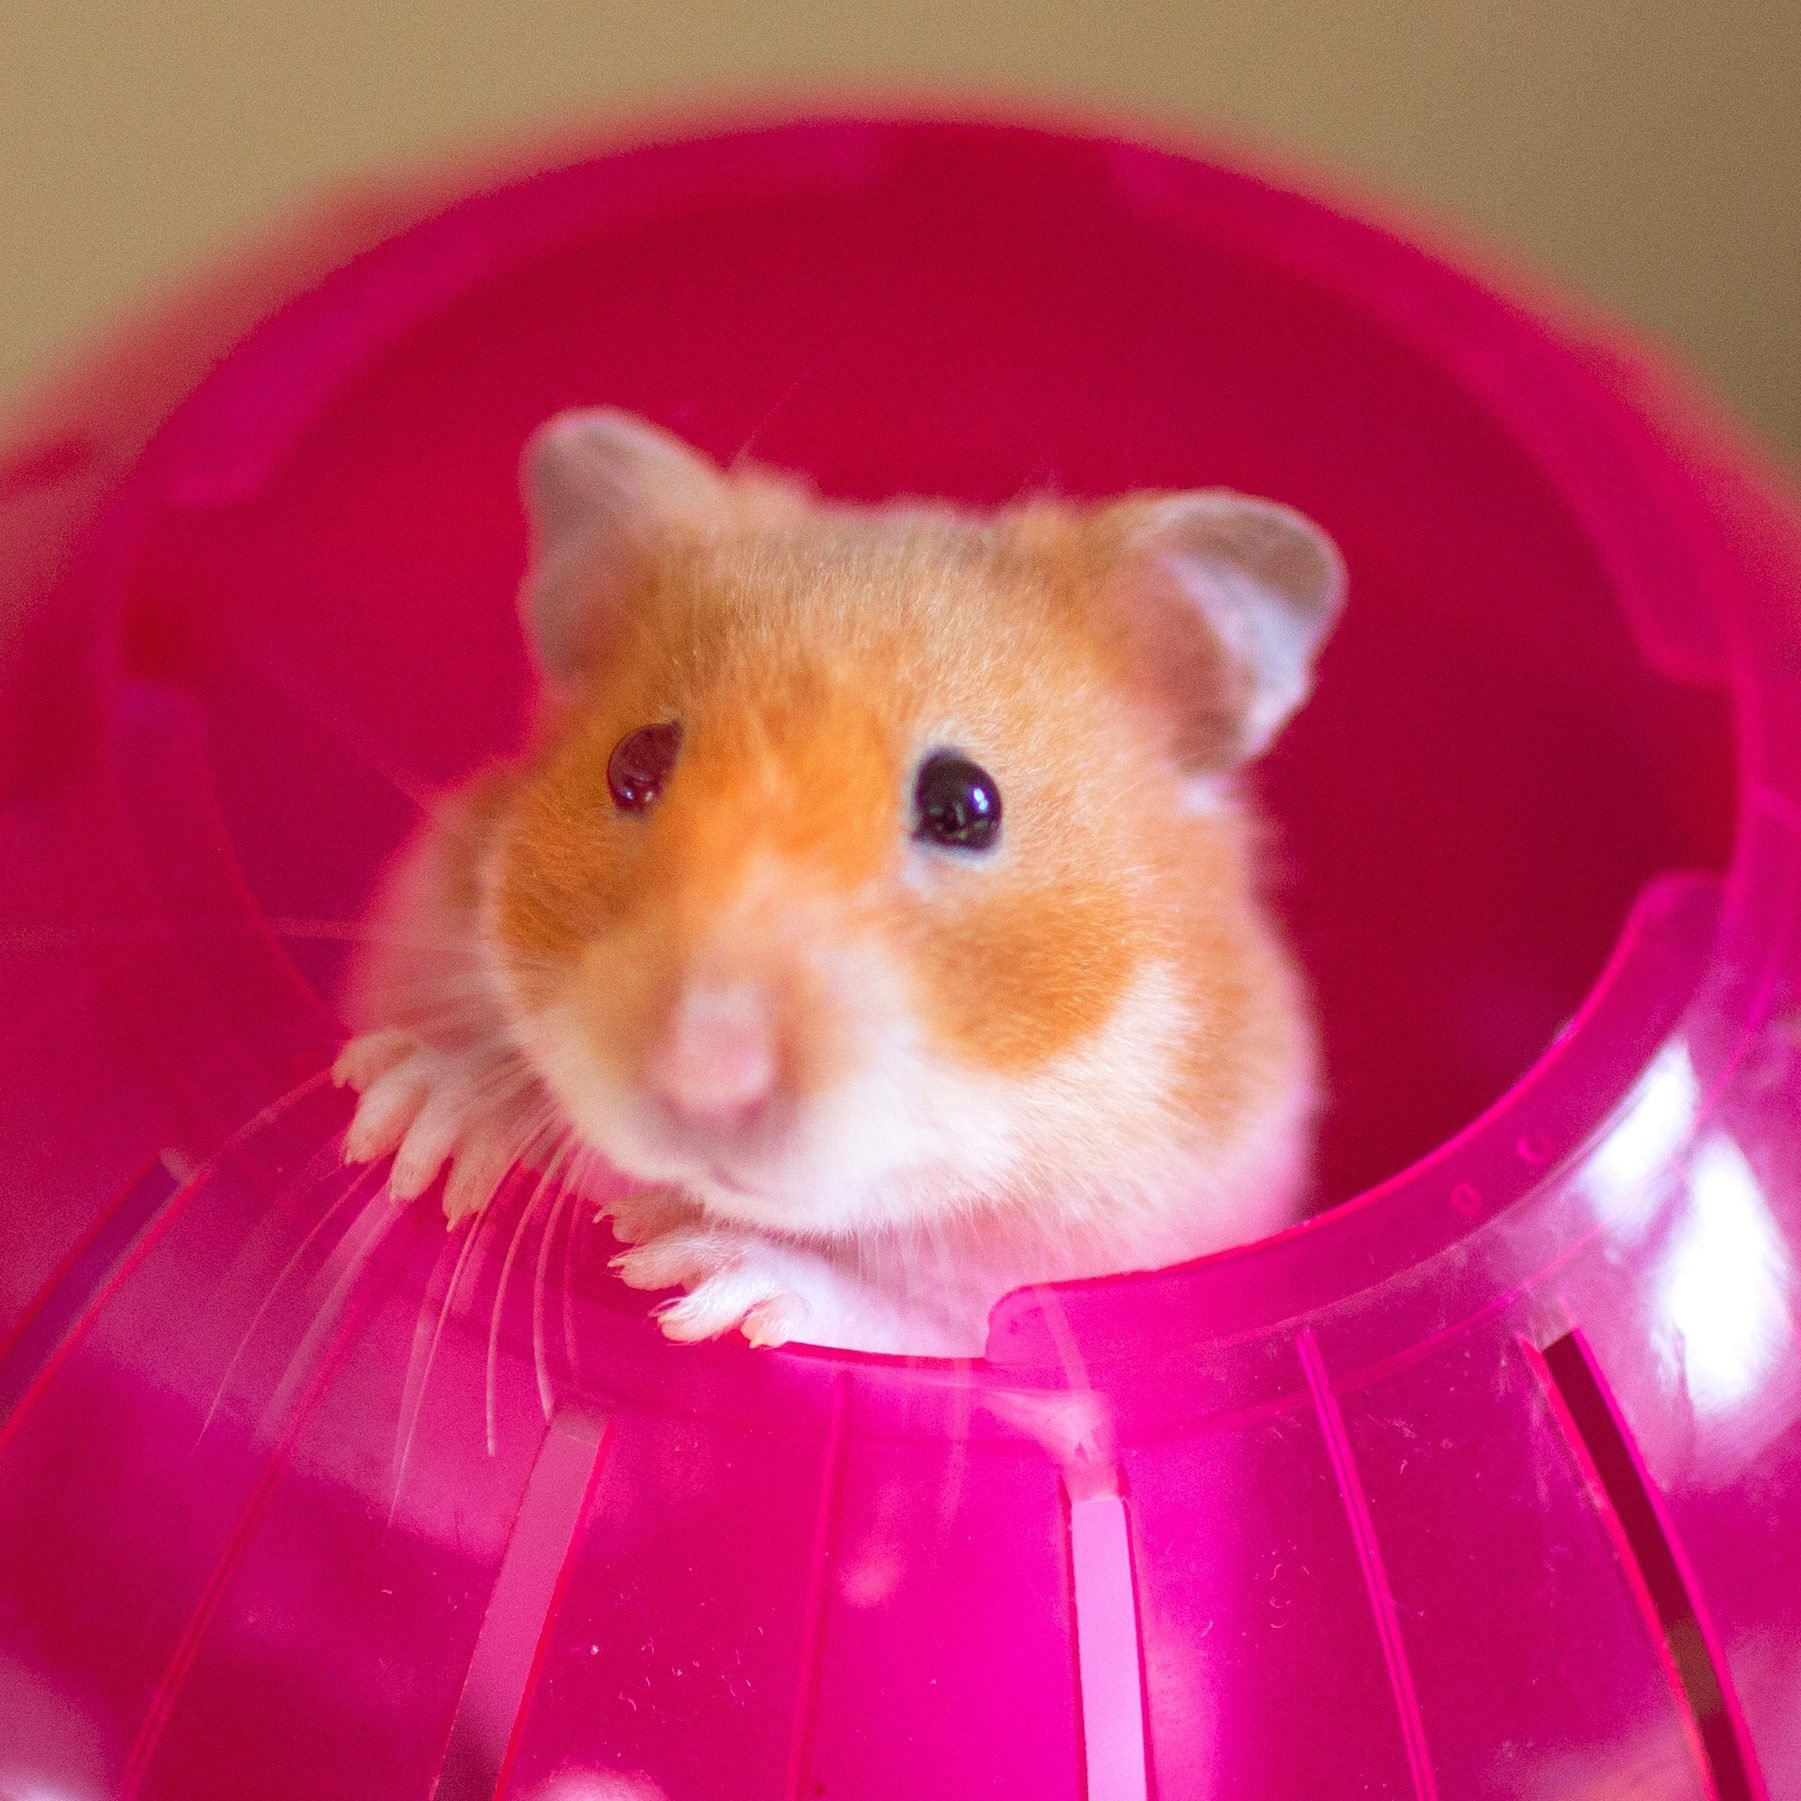 Cute Syrian hamster poking her head out of a bright red exercise ball, looking in to the camera